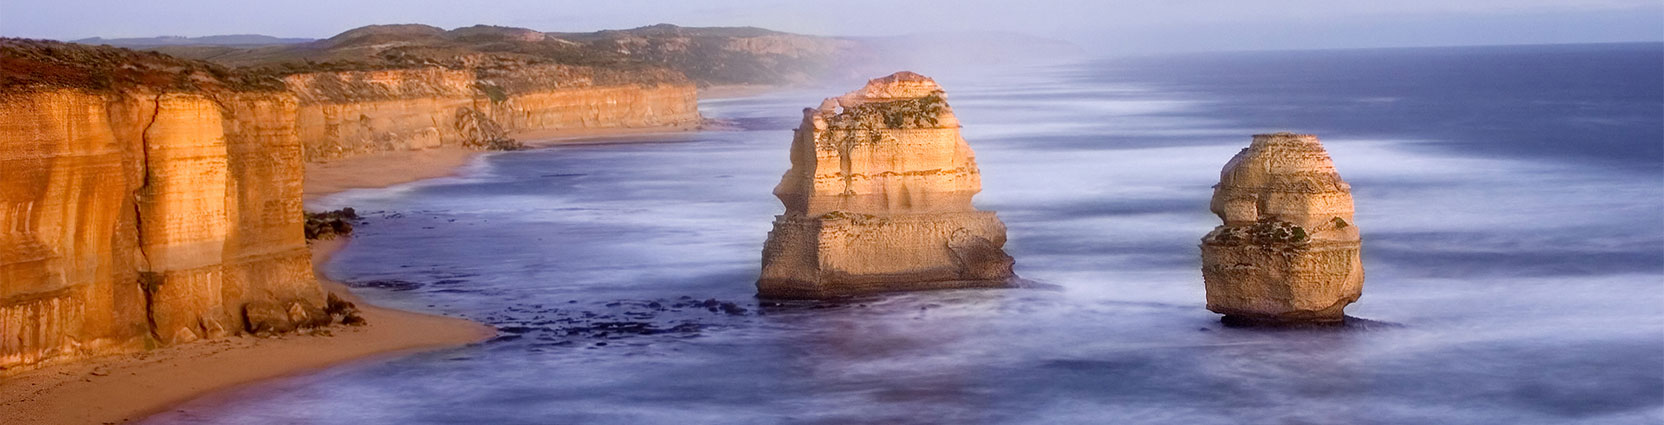 The limestone stacks of Australia's Twelve Apostles.